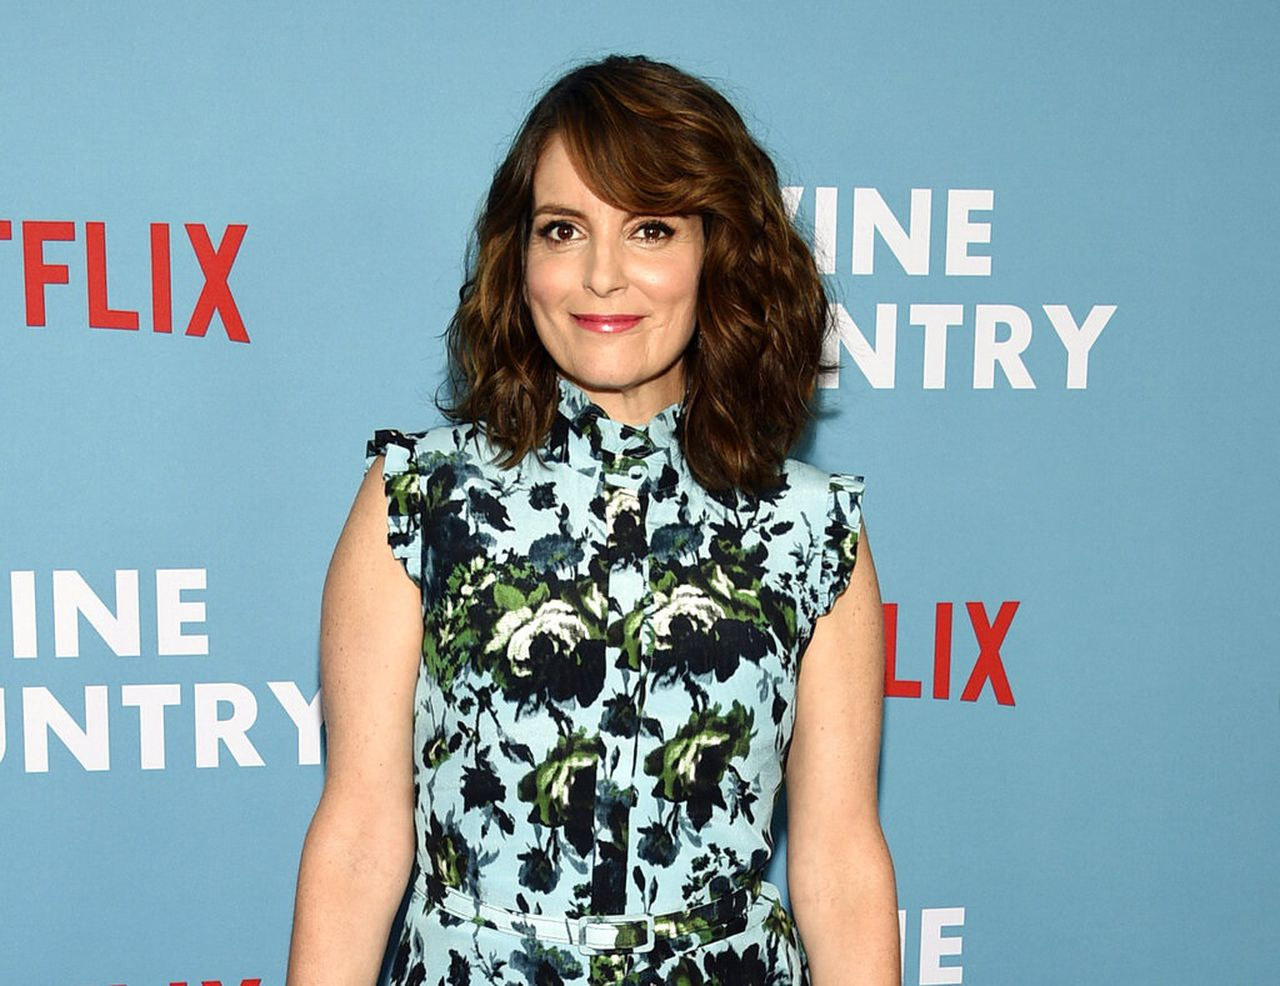 today's-famous-birthdays-list-for-may-18,-2021-includes-celebrity-tina-fey